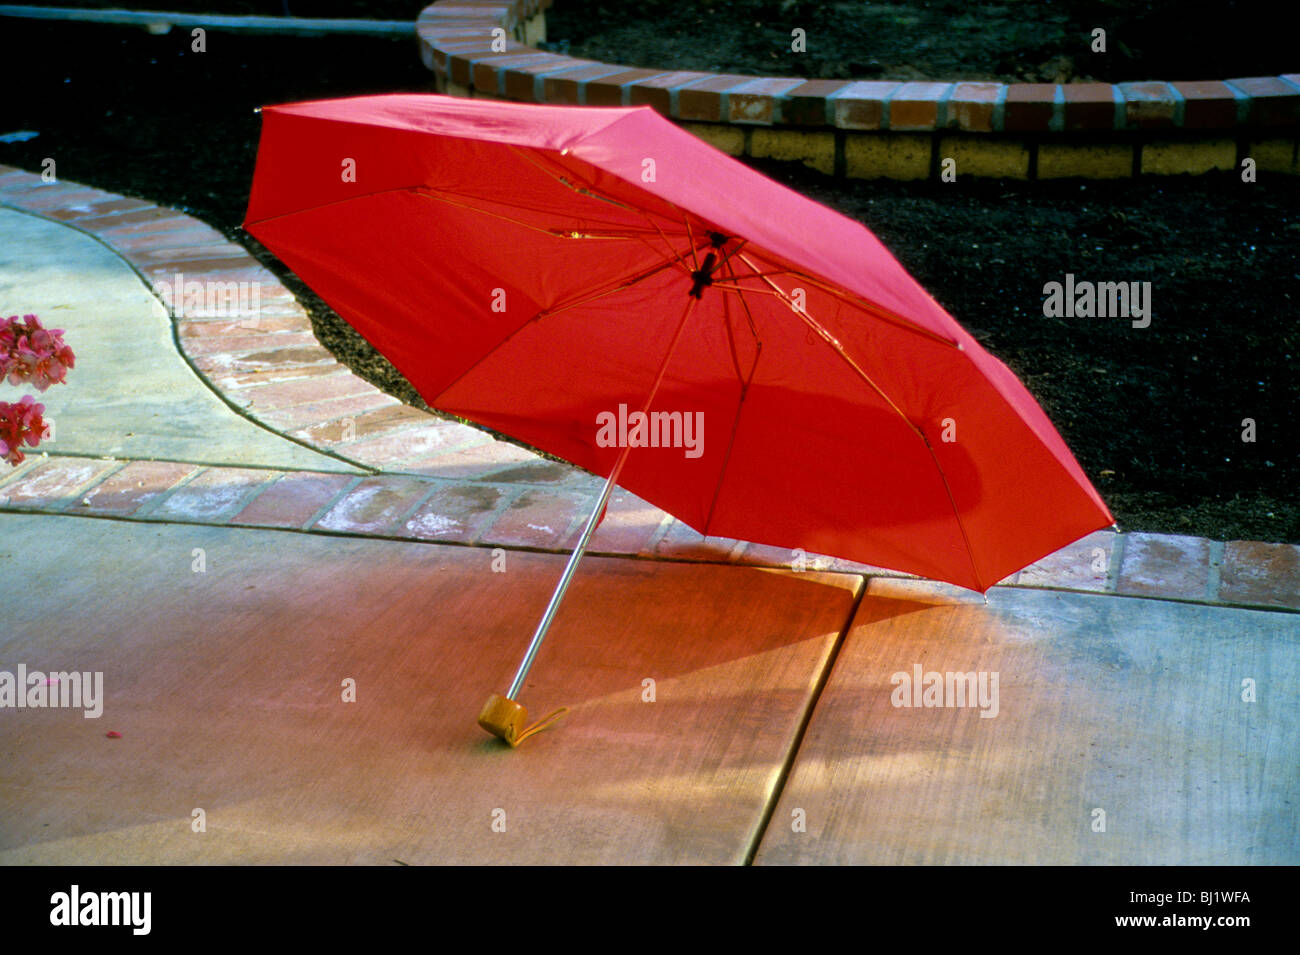 Open Red Umbrella Rain Water Protection Color Spread Cover Dry Sun Sidewalk  Walk Garden Wet Fabric Handle Shaft Rod Fold Collaps